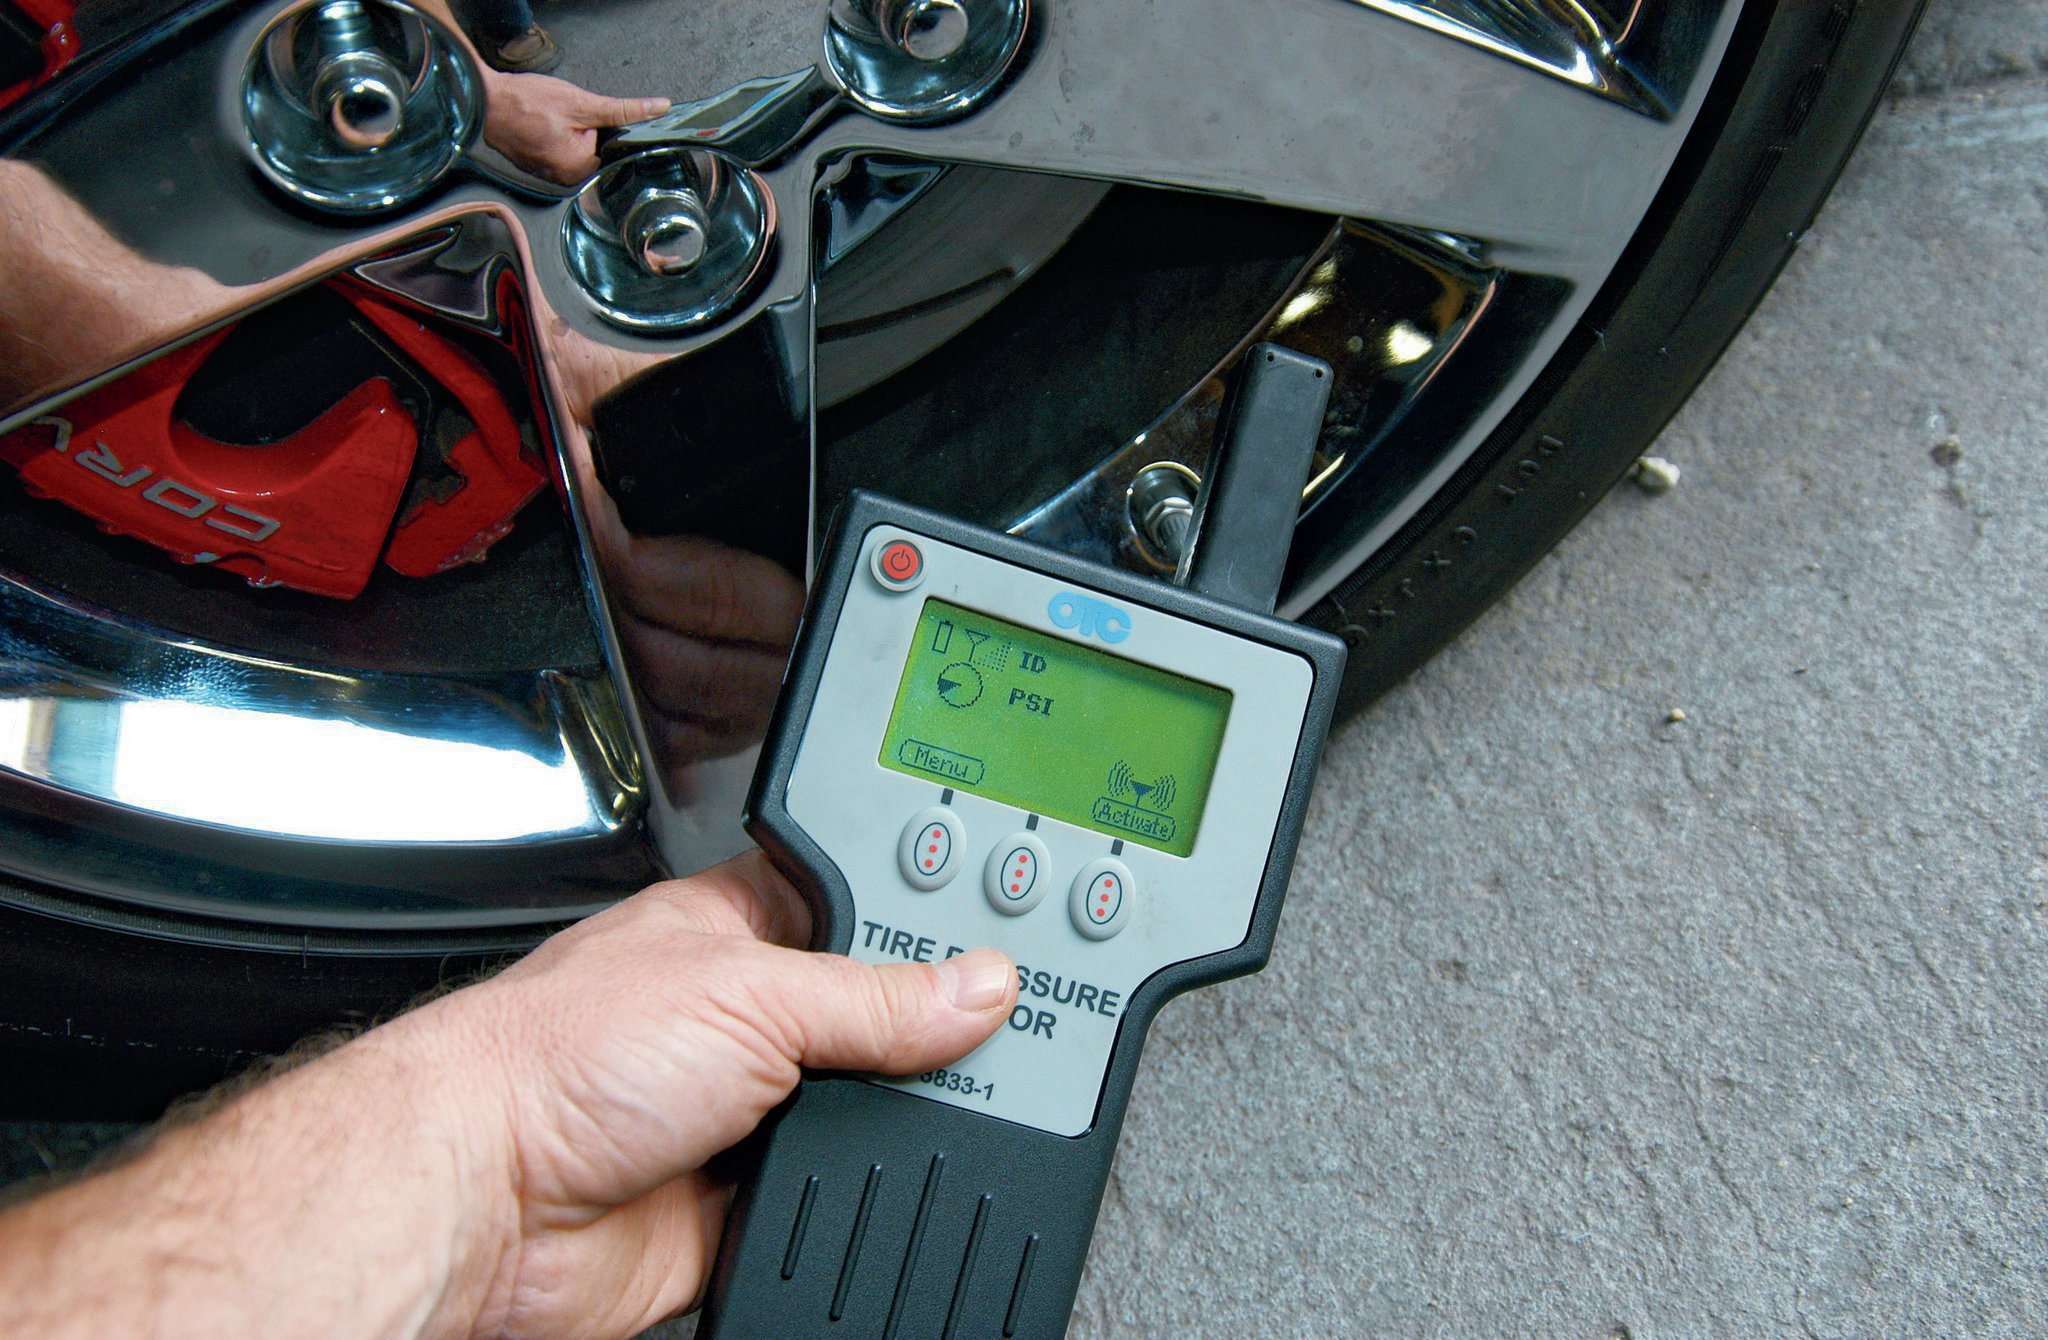 C5 and C6 Tire Pressure Monitoring System - Technically Speaking